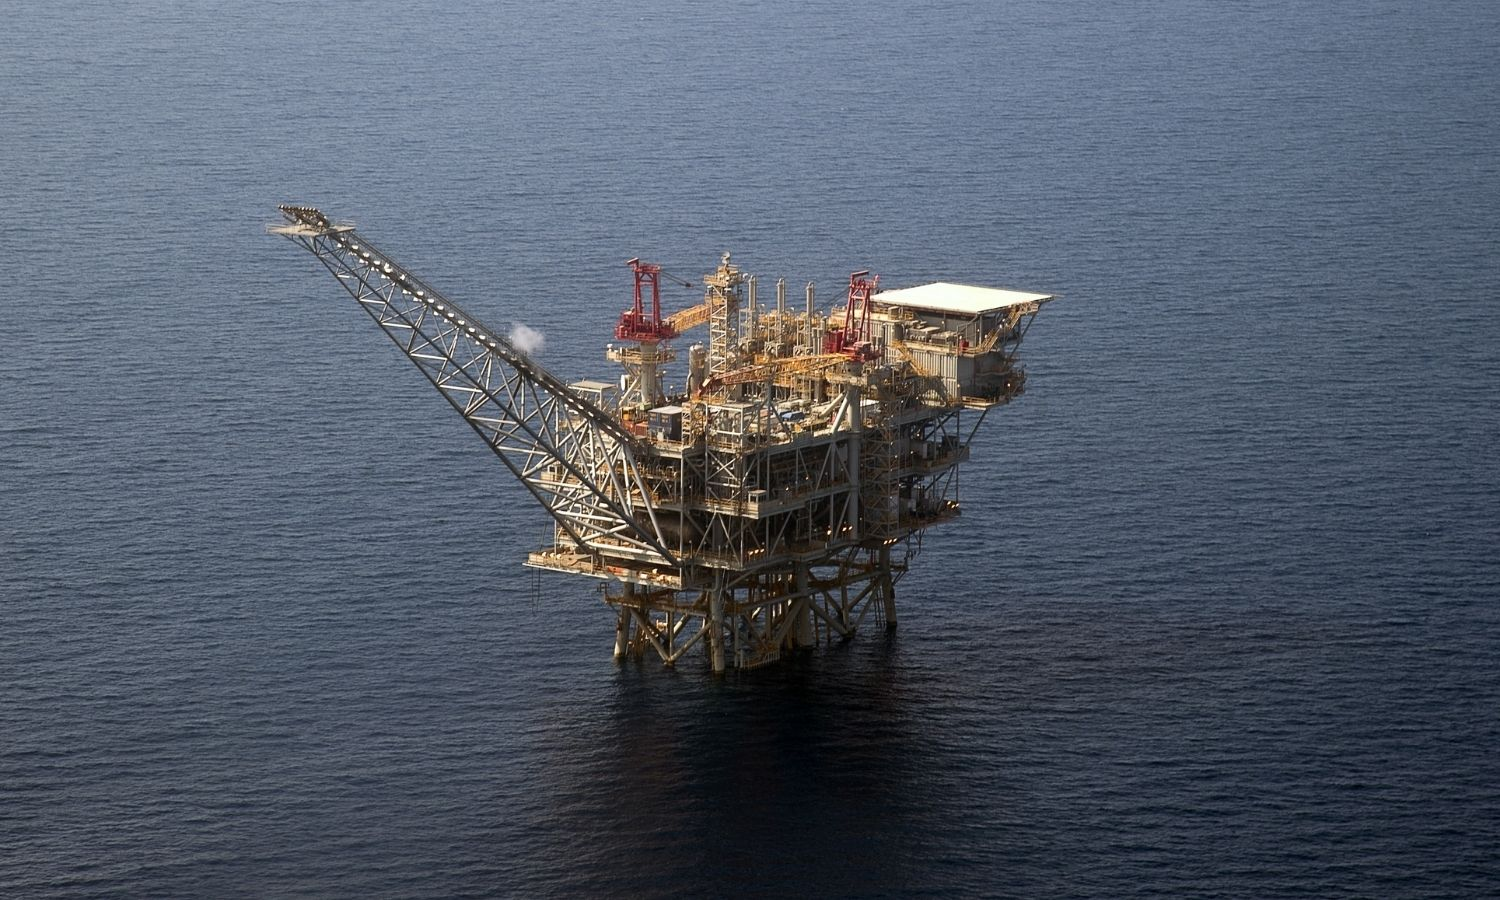 A natural gas well in the Mediterranean Sea (AFP)